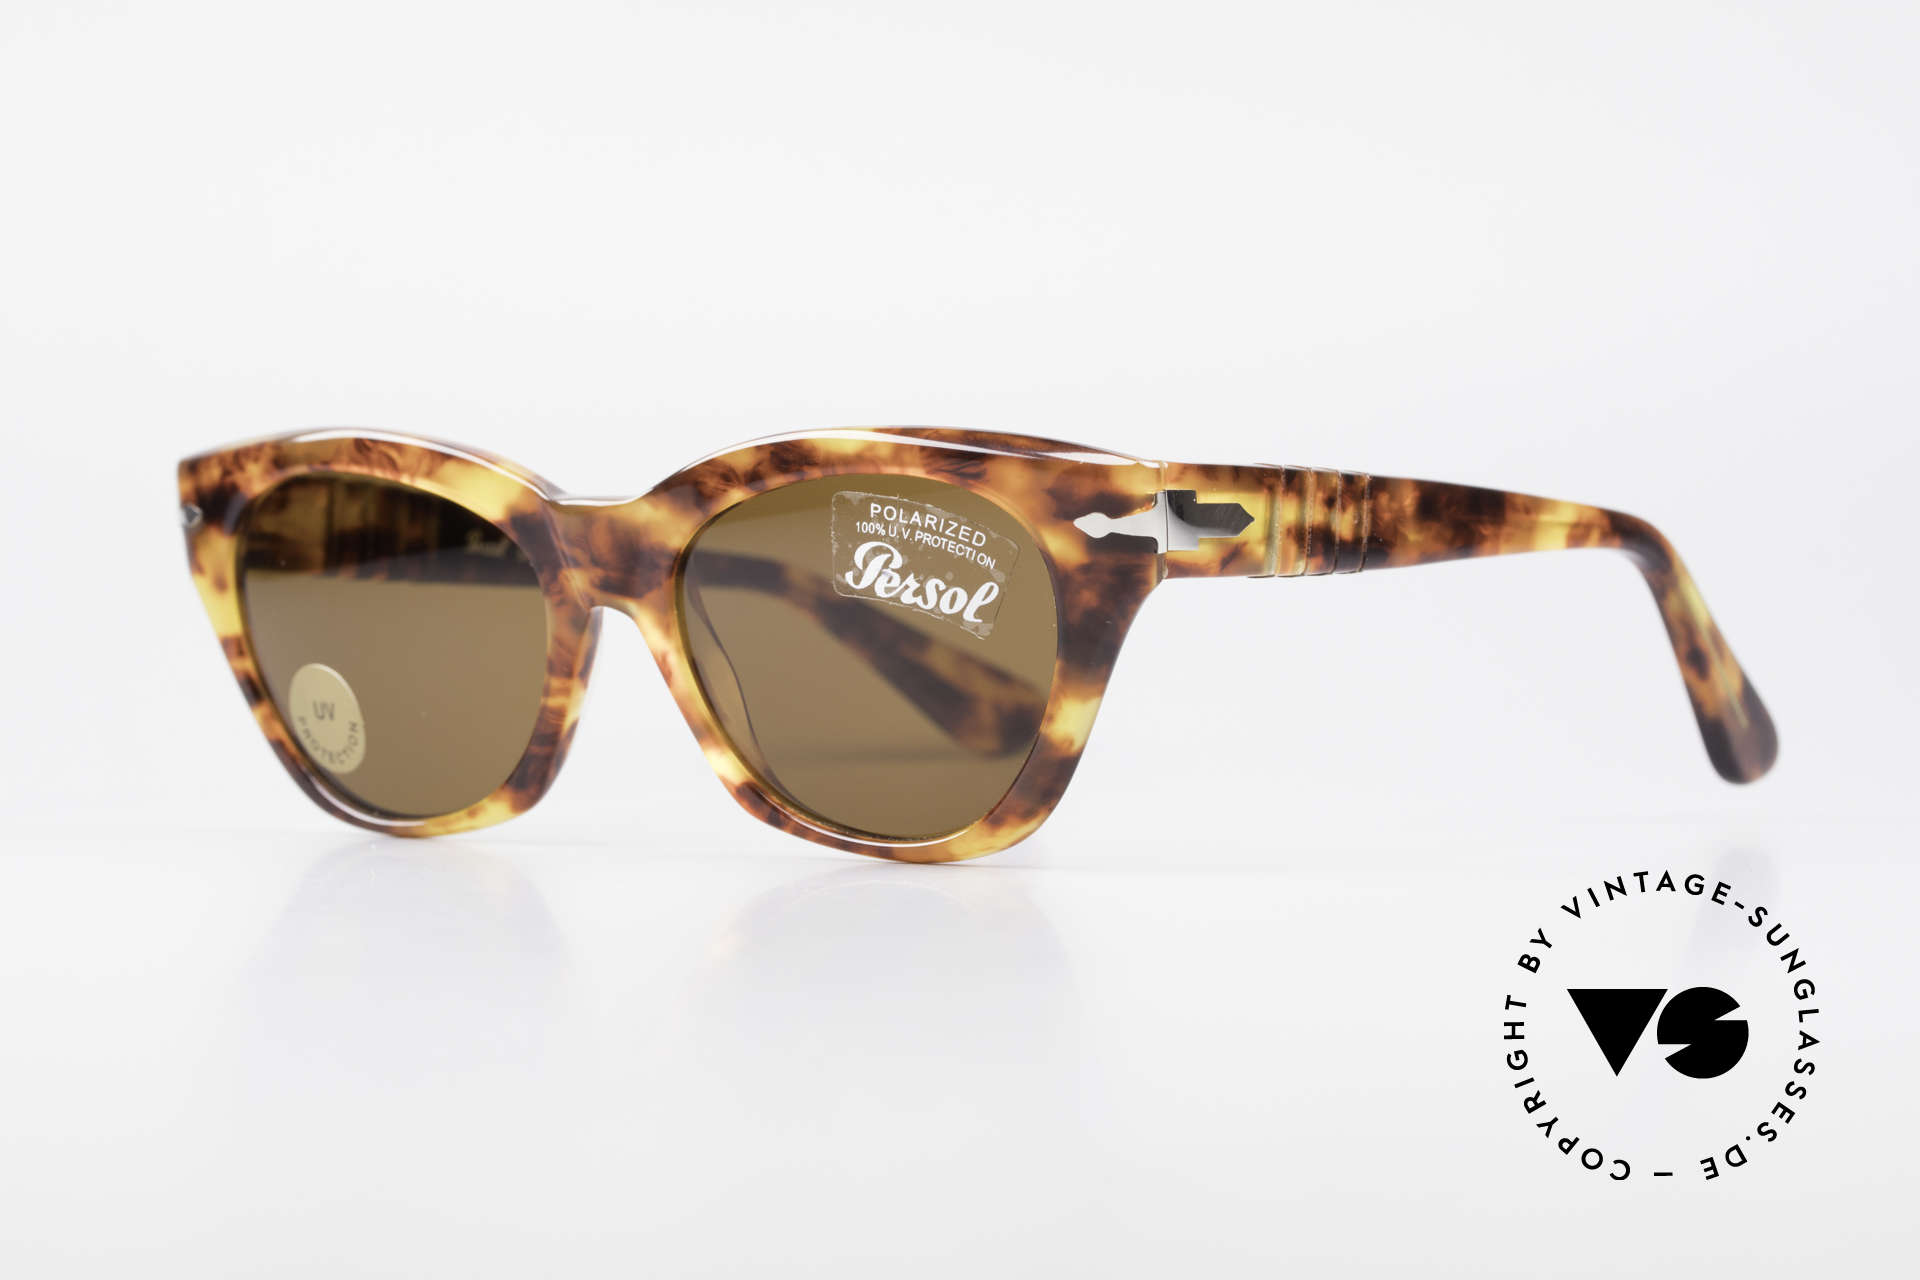 Persol 842 Ratti Classic Ladies Sunglasses, Persol mineral lenses for 100% UV protection, Made for Women